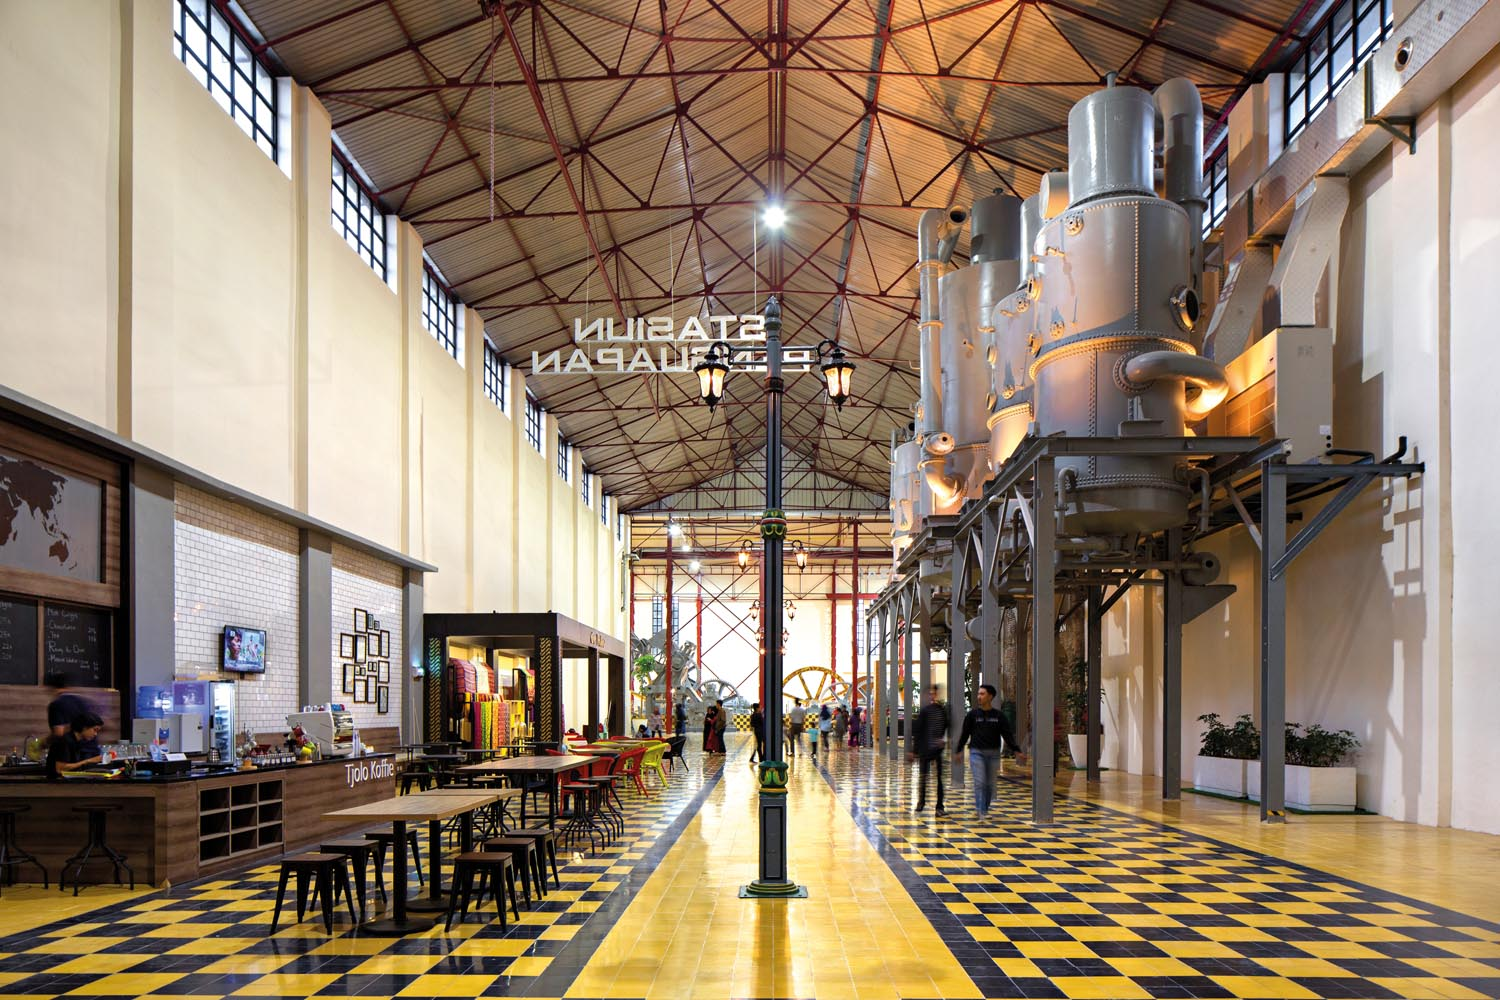 Airmas Asri Converts a Century-Year-Old Factory into a Multifunctional Heritage Destination